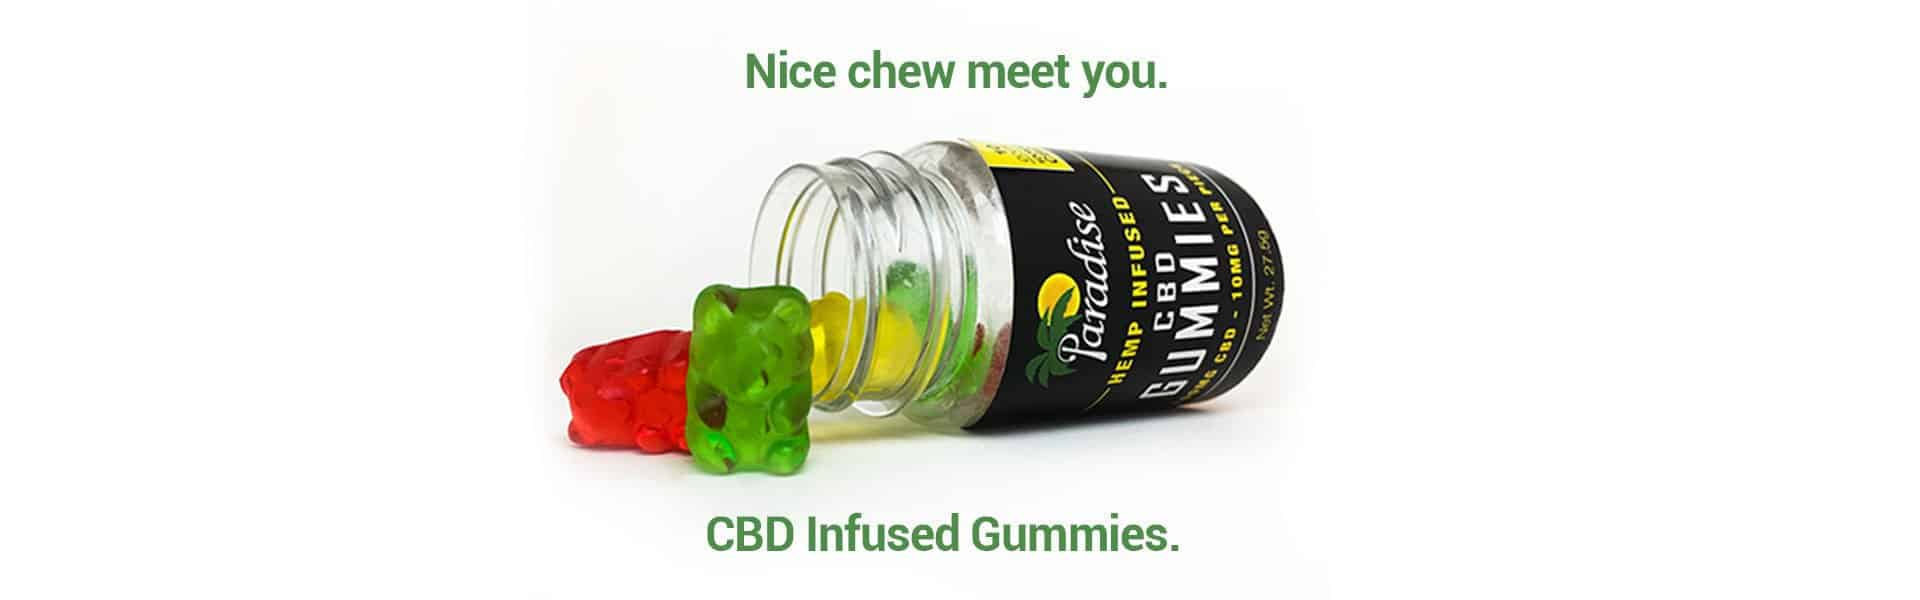 CBDonly Coupon Code Online Discount Save On Cannabis